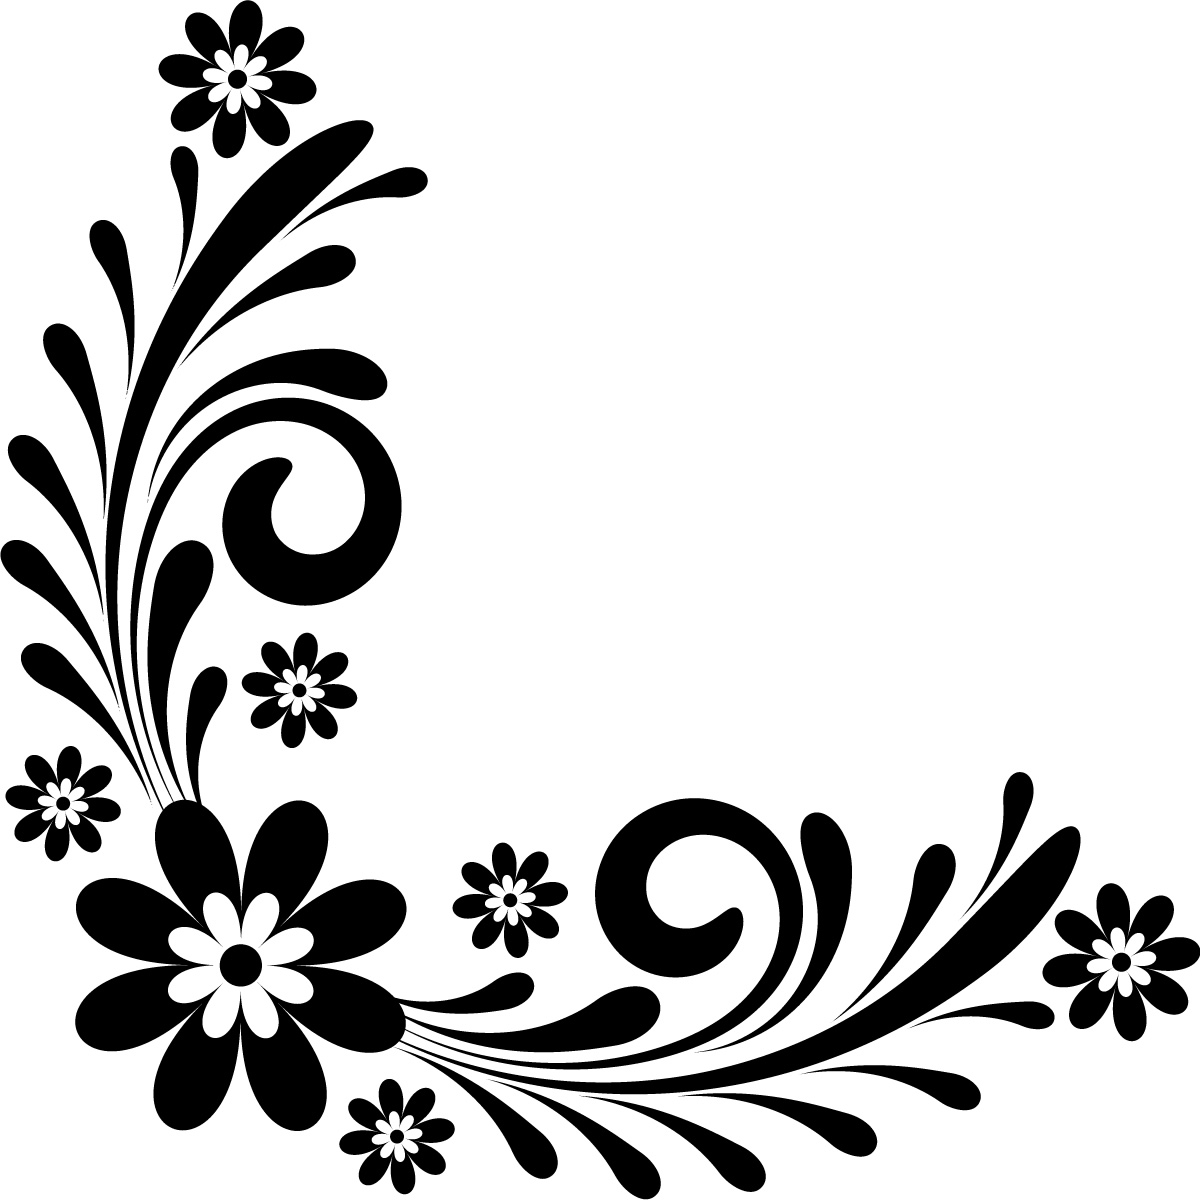 Page Border Designs Flowers Black And White